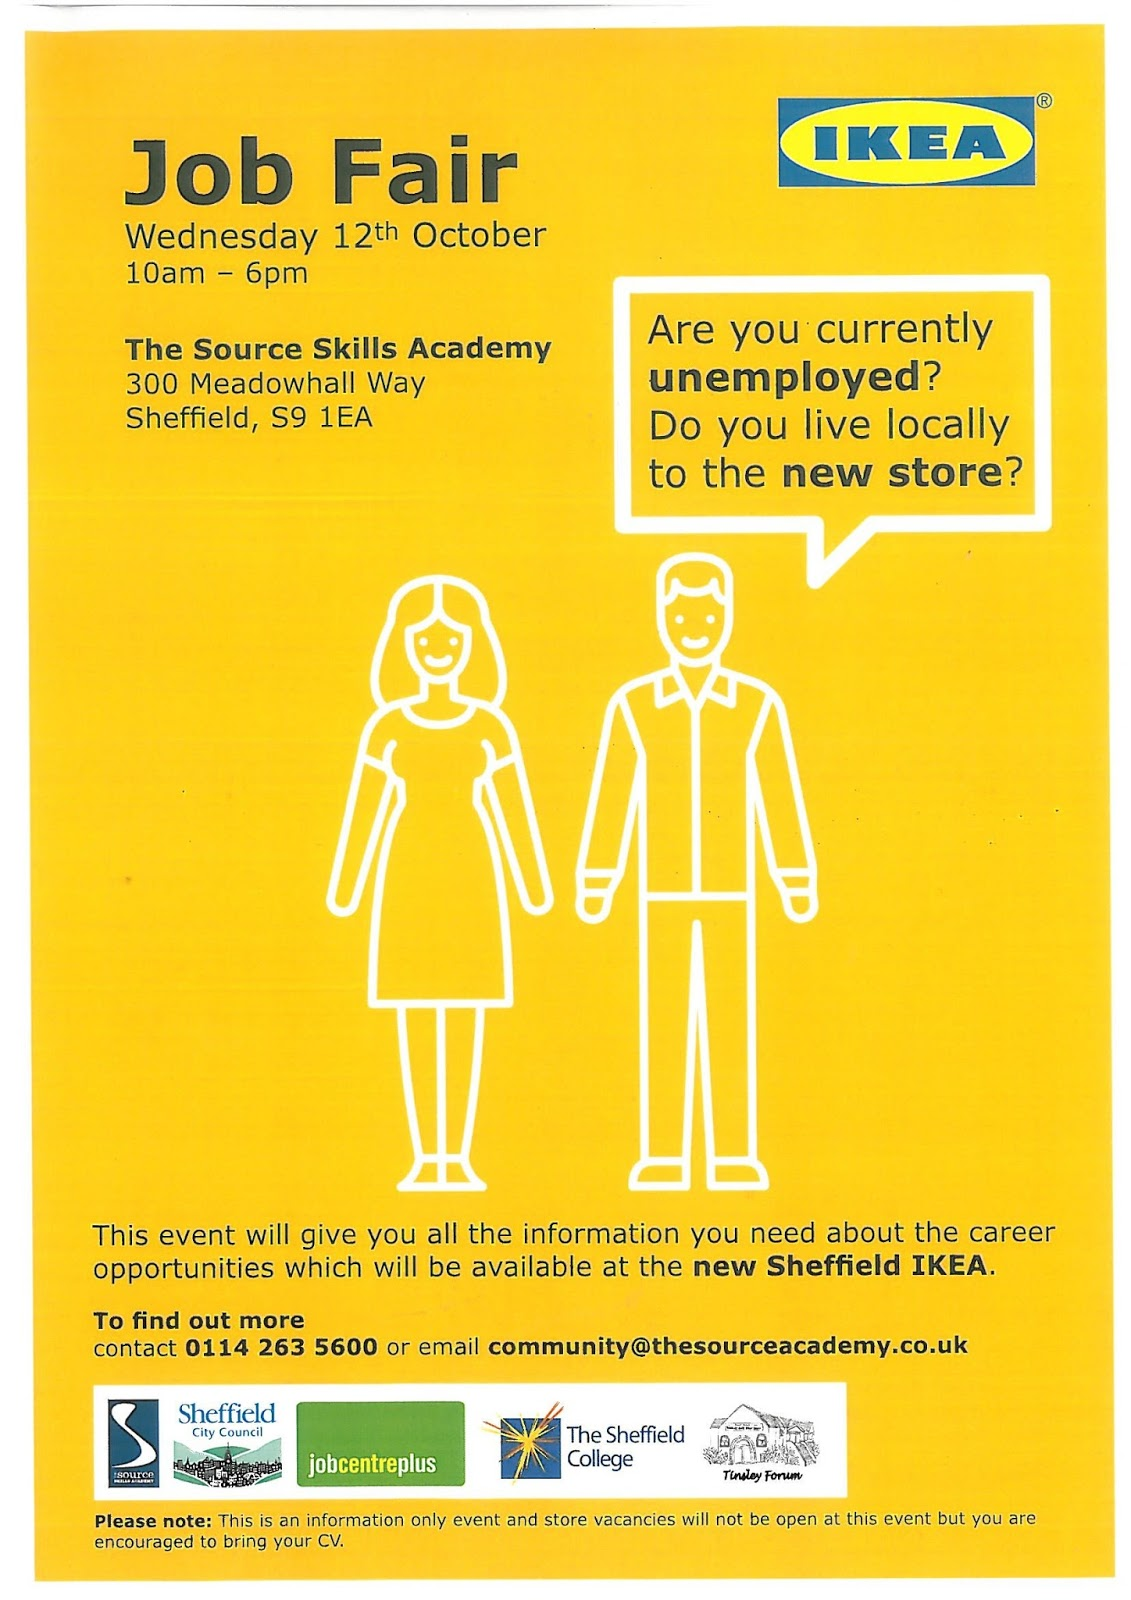 Ikea Poster Welcome To Darnall Forum S Community Website Ikea Job Fair For